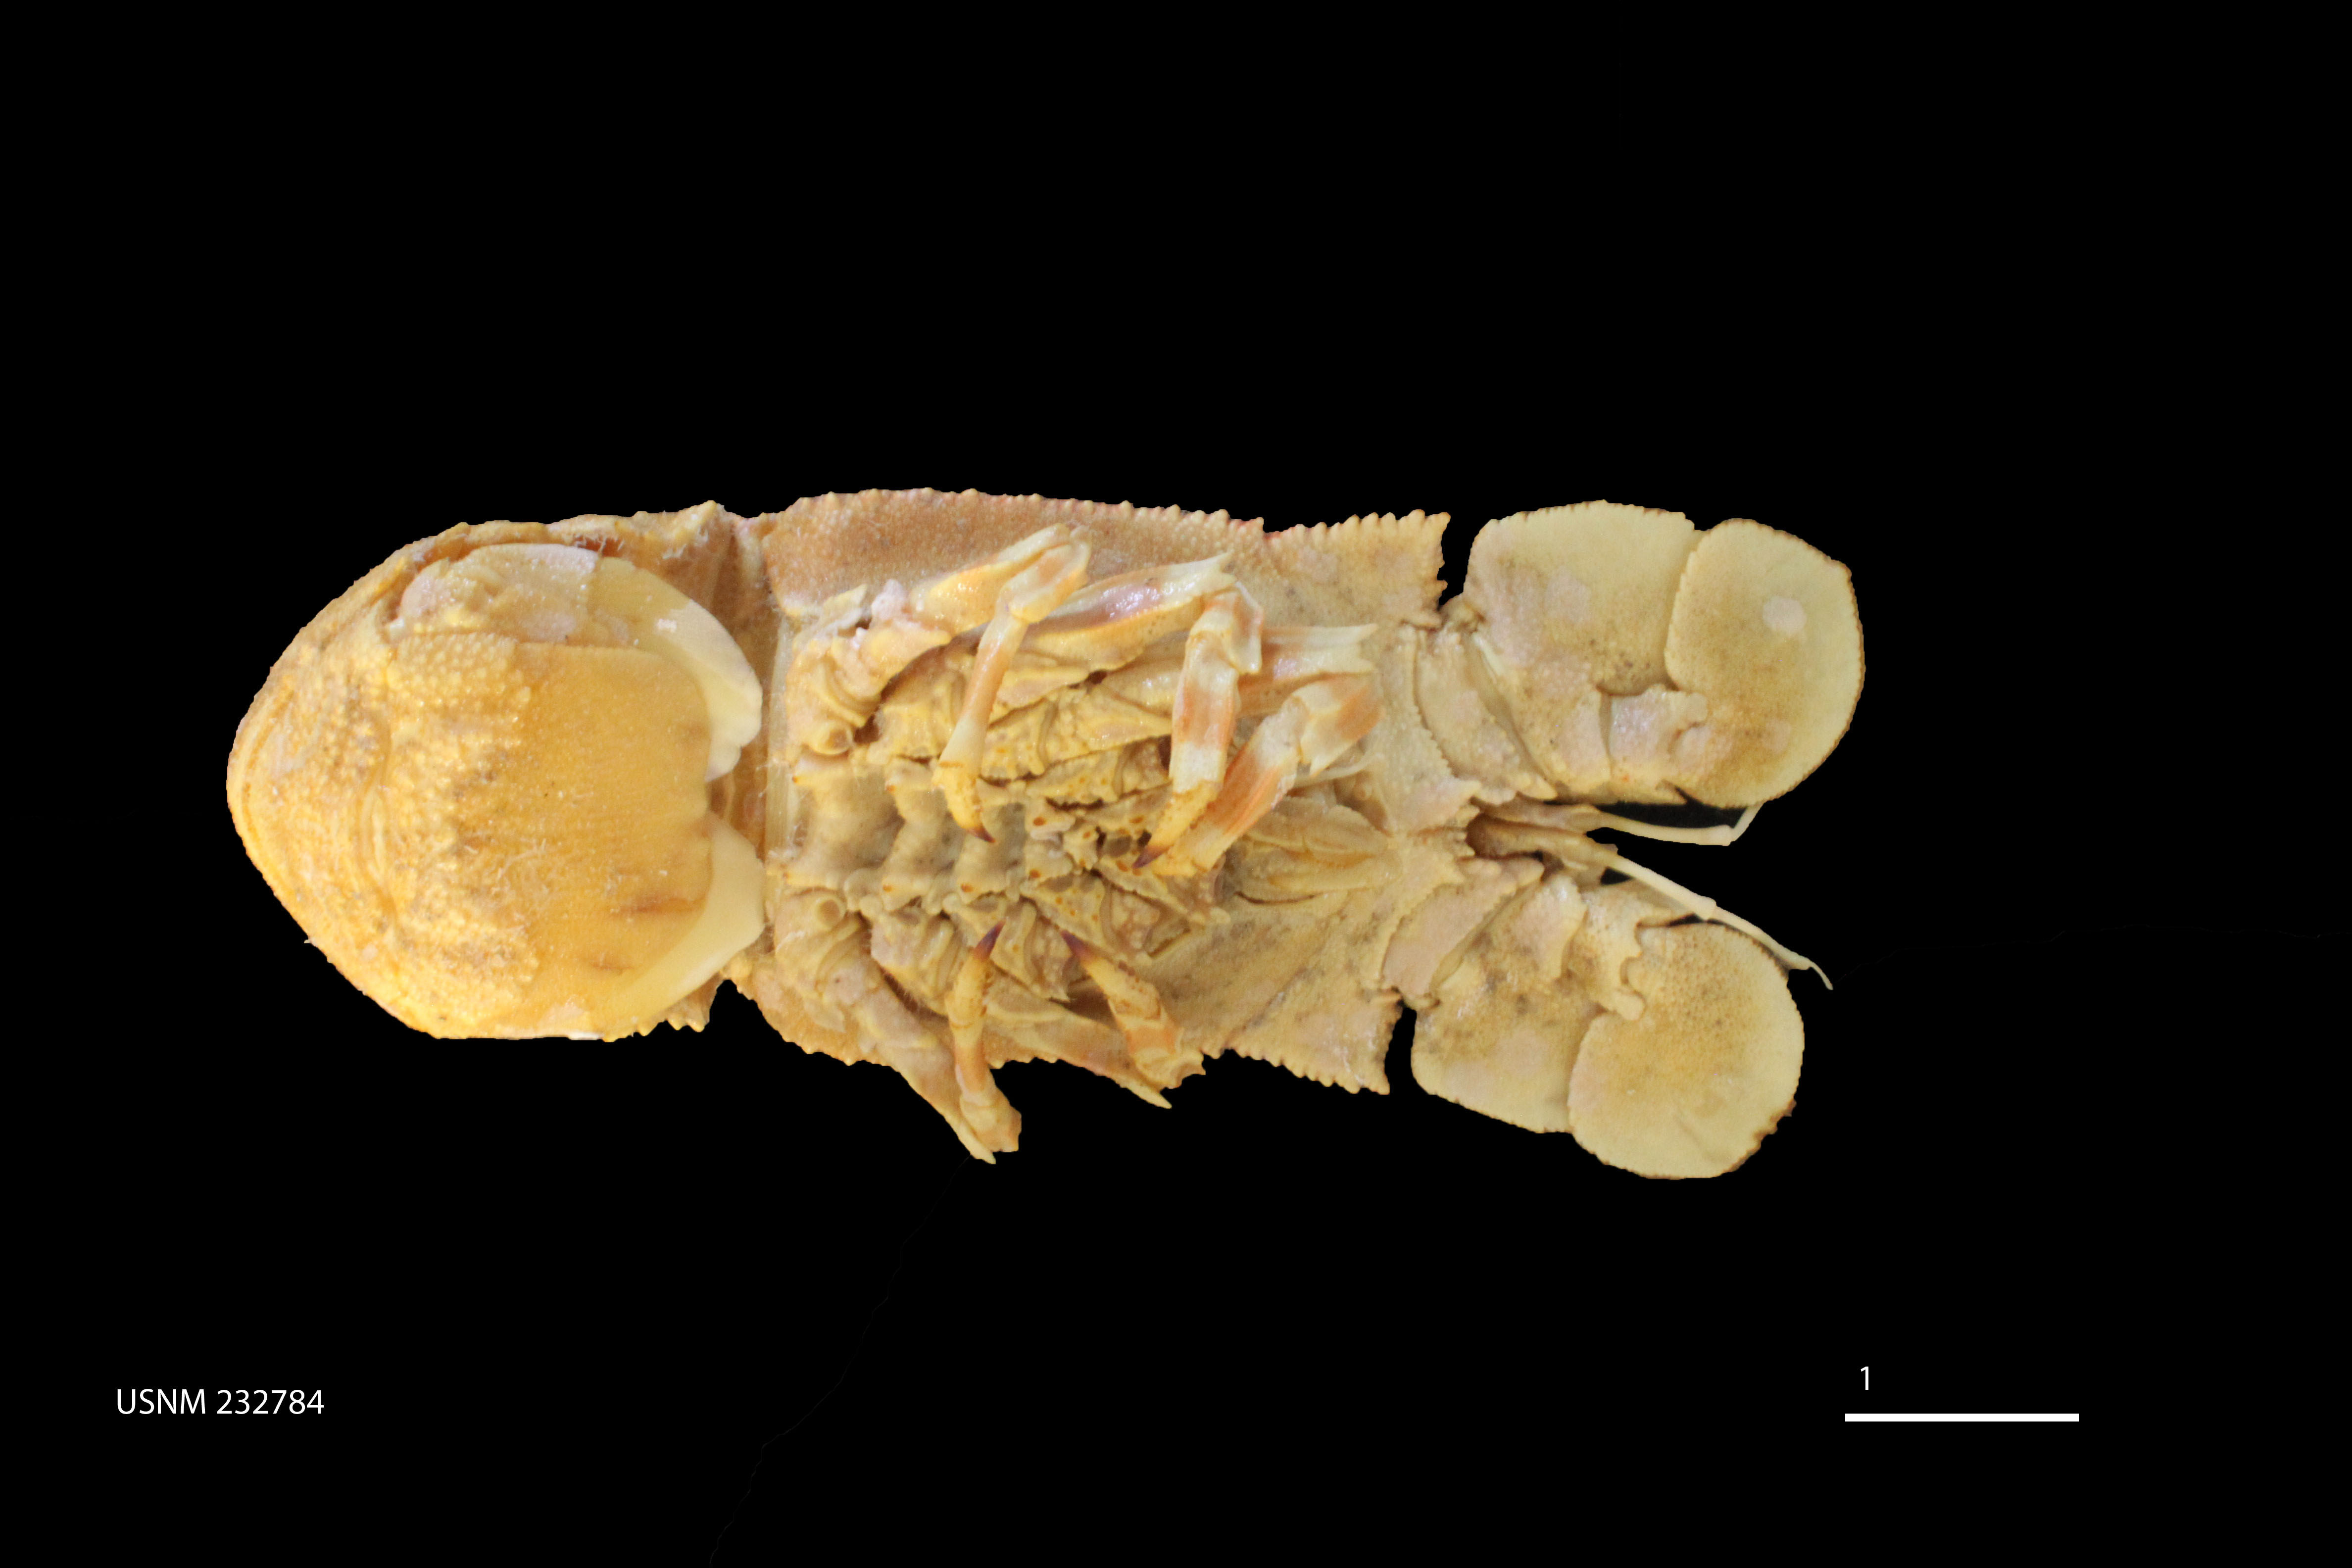 Image of ridged slipper lobster